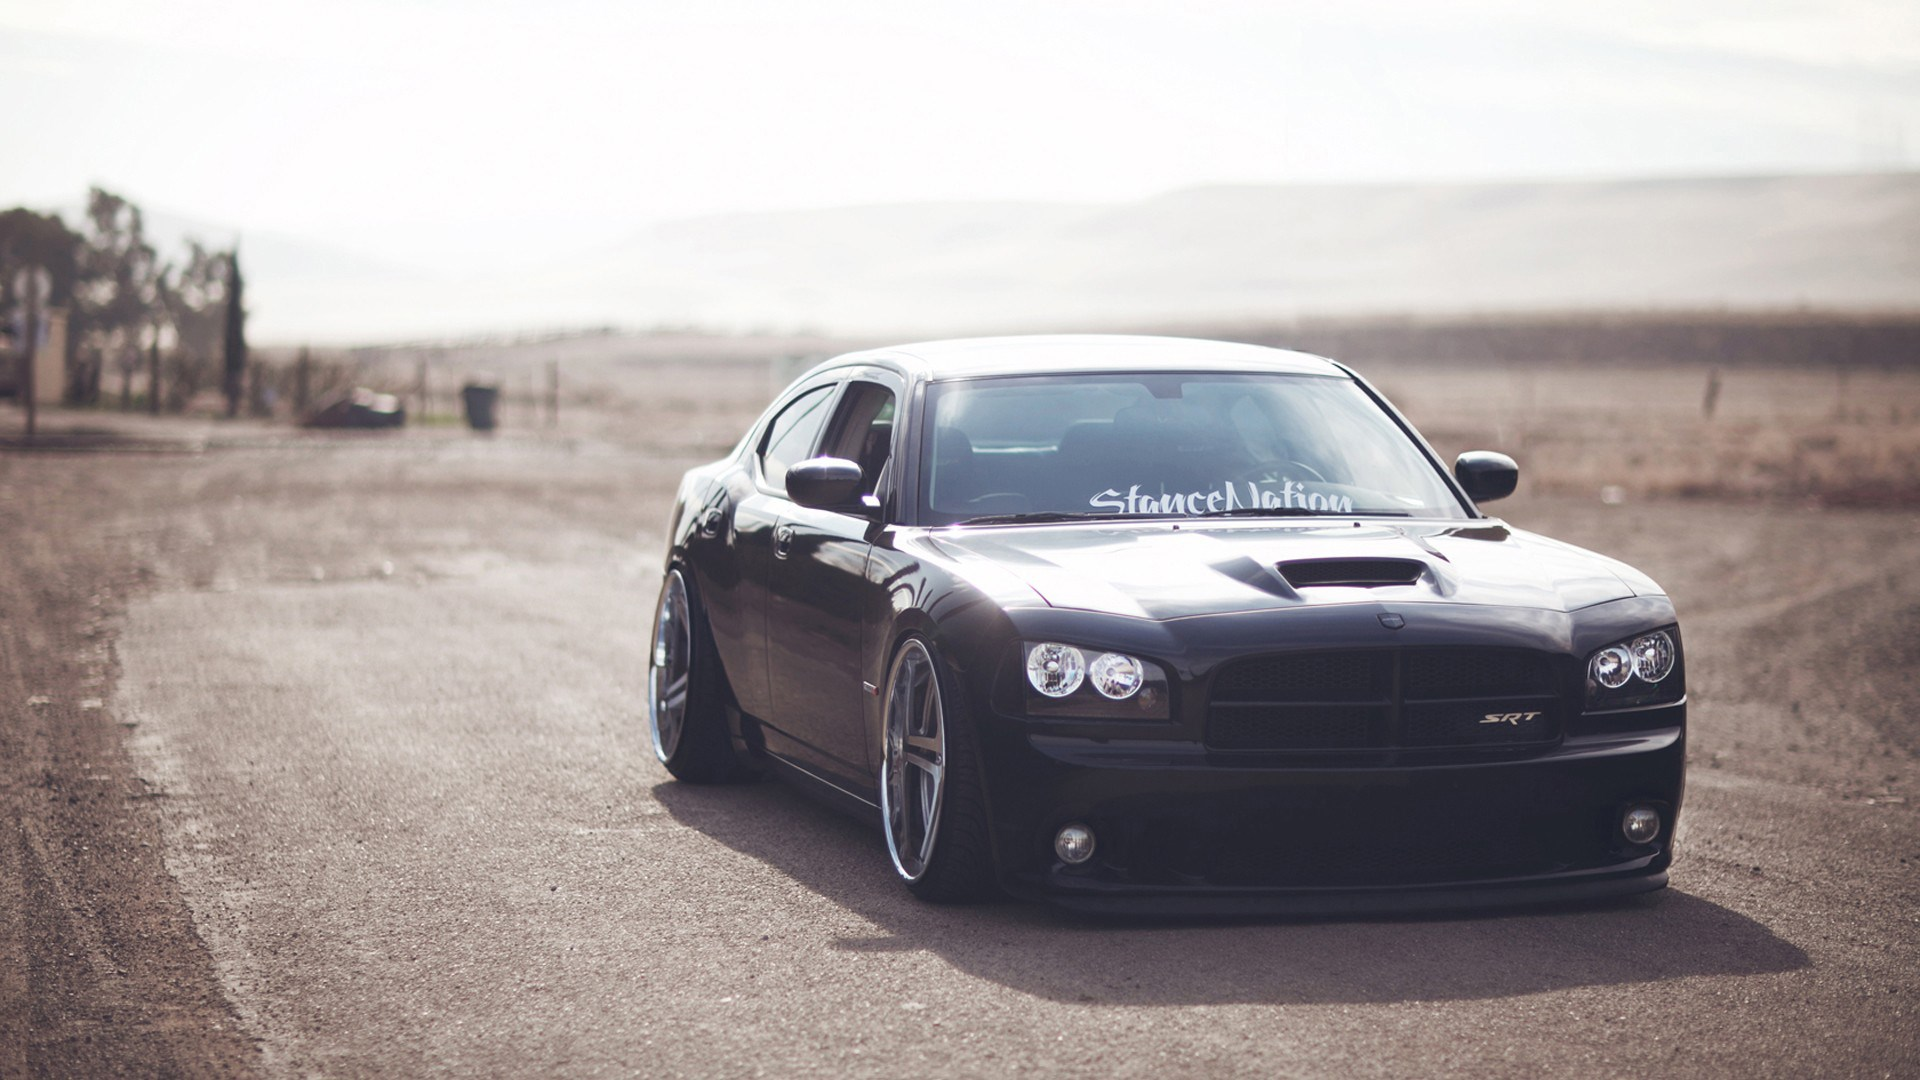 1920x1080-free-desktop-backgrounds-for-dodge-charger-srt-wallpaper-wpc900673